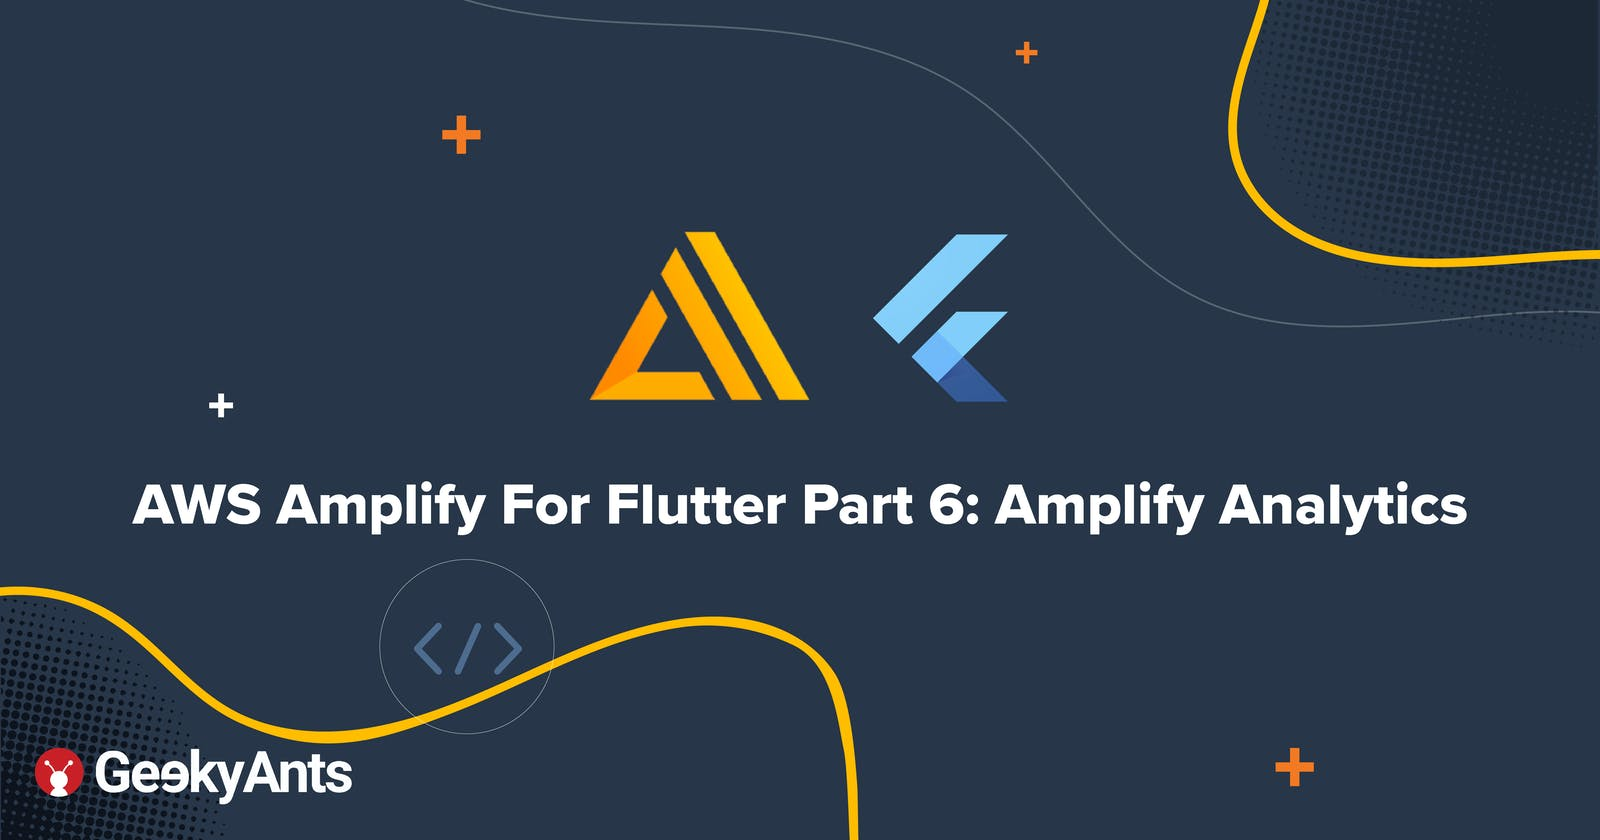 AWS Amplify For Flutter Part 6: Amplify Analytics